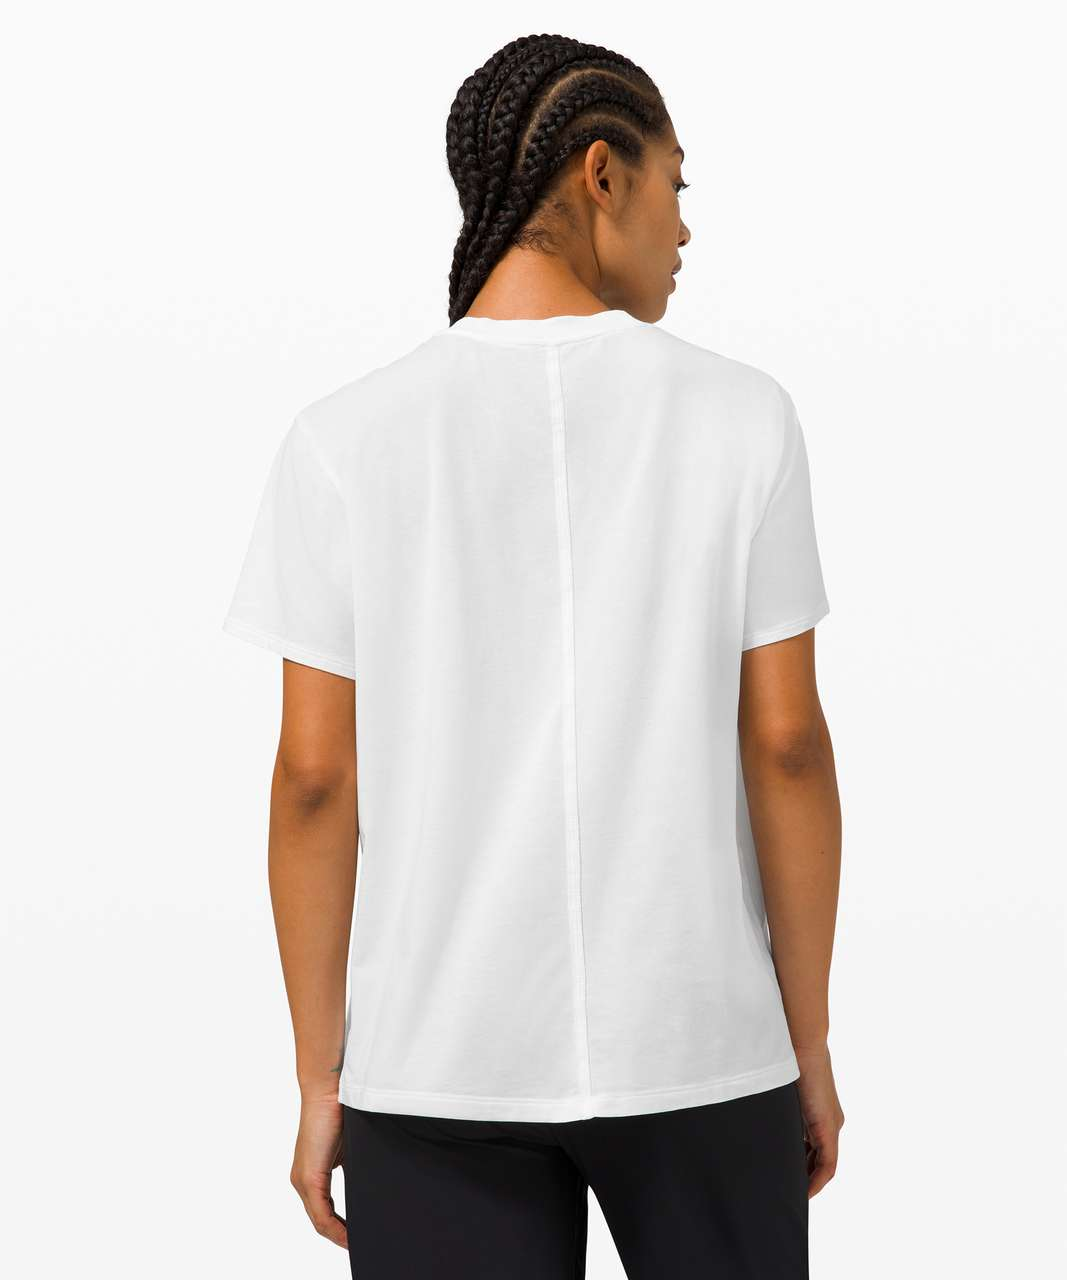 Lululemon All Yours Tee *Graphic - White